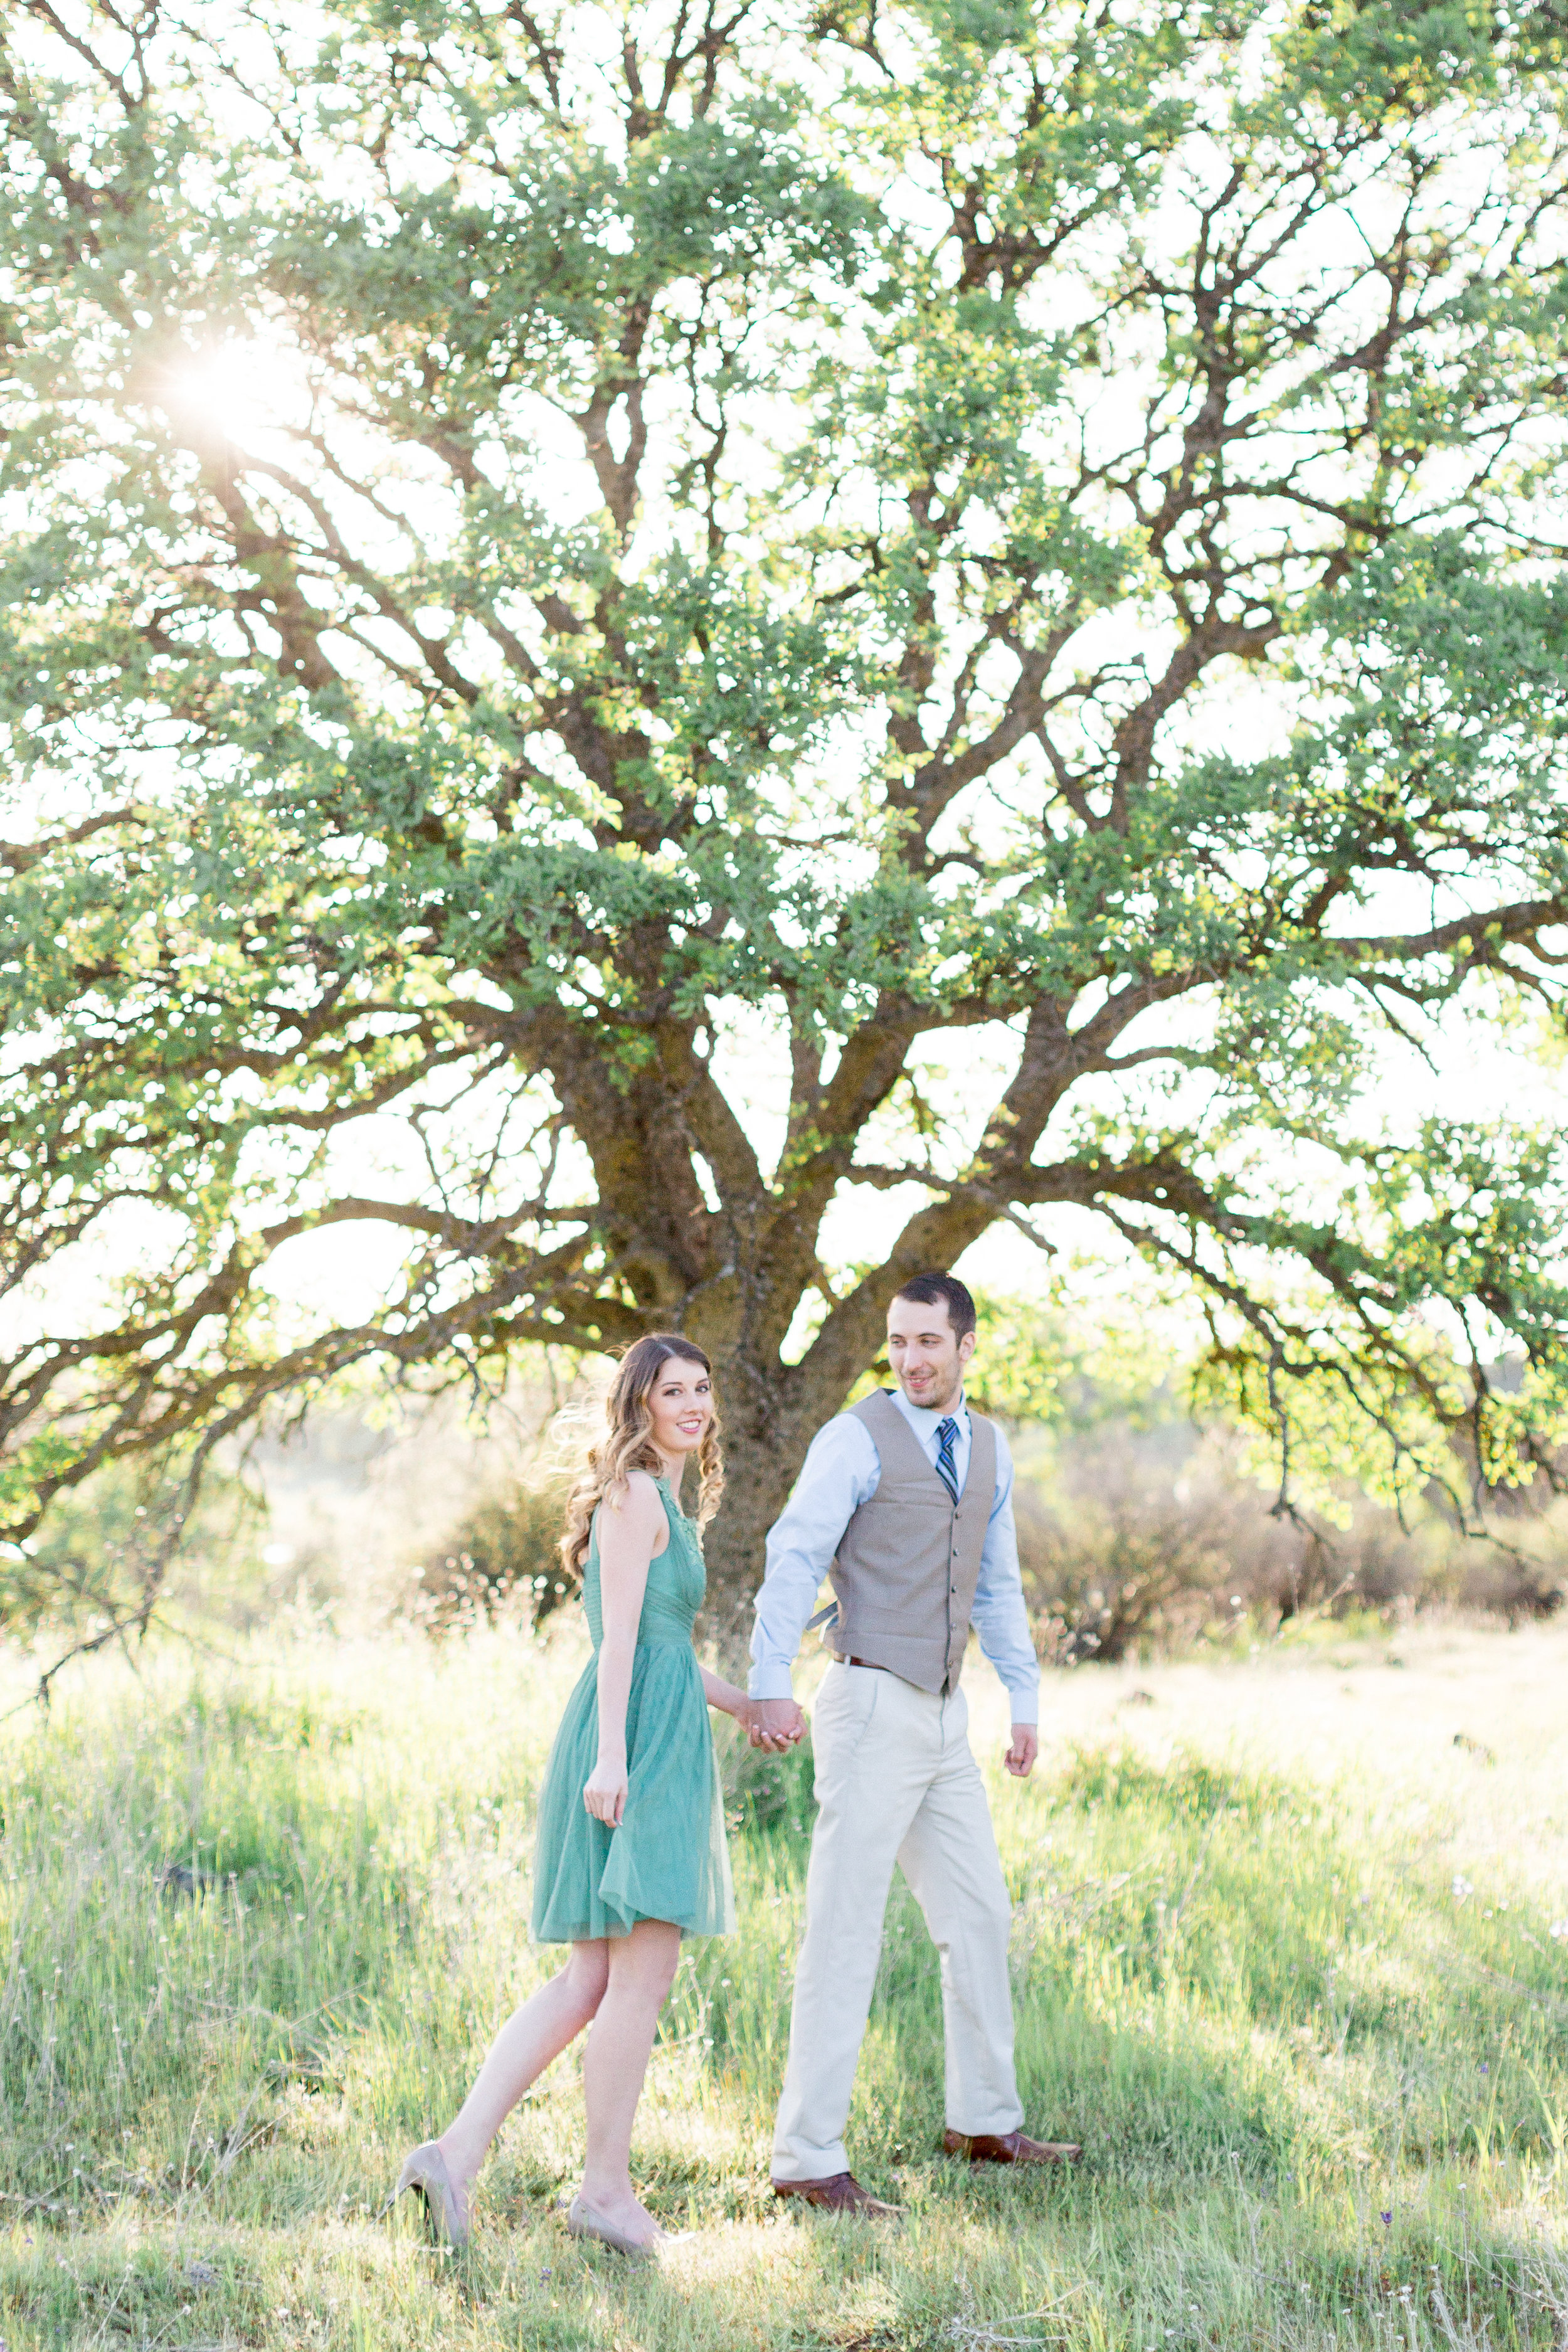 upper-bidwell-chico-california-engagement-session-trebrittany-29.jpg